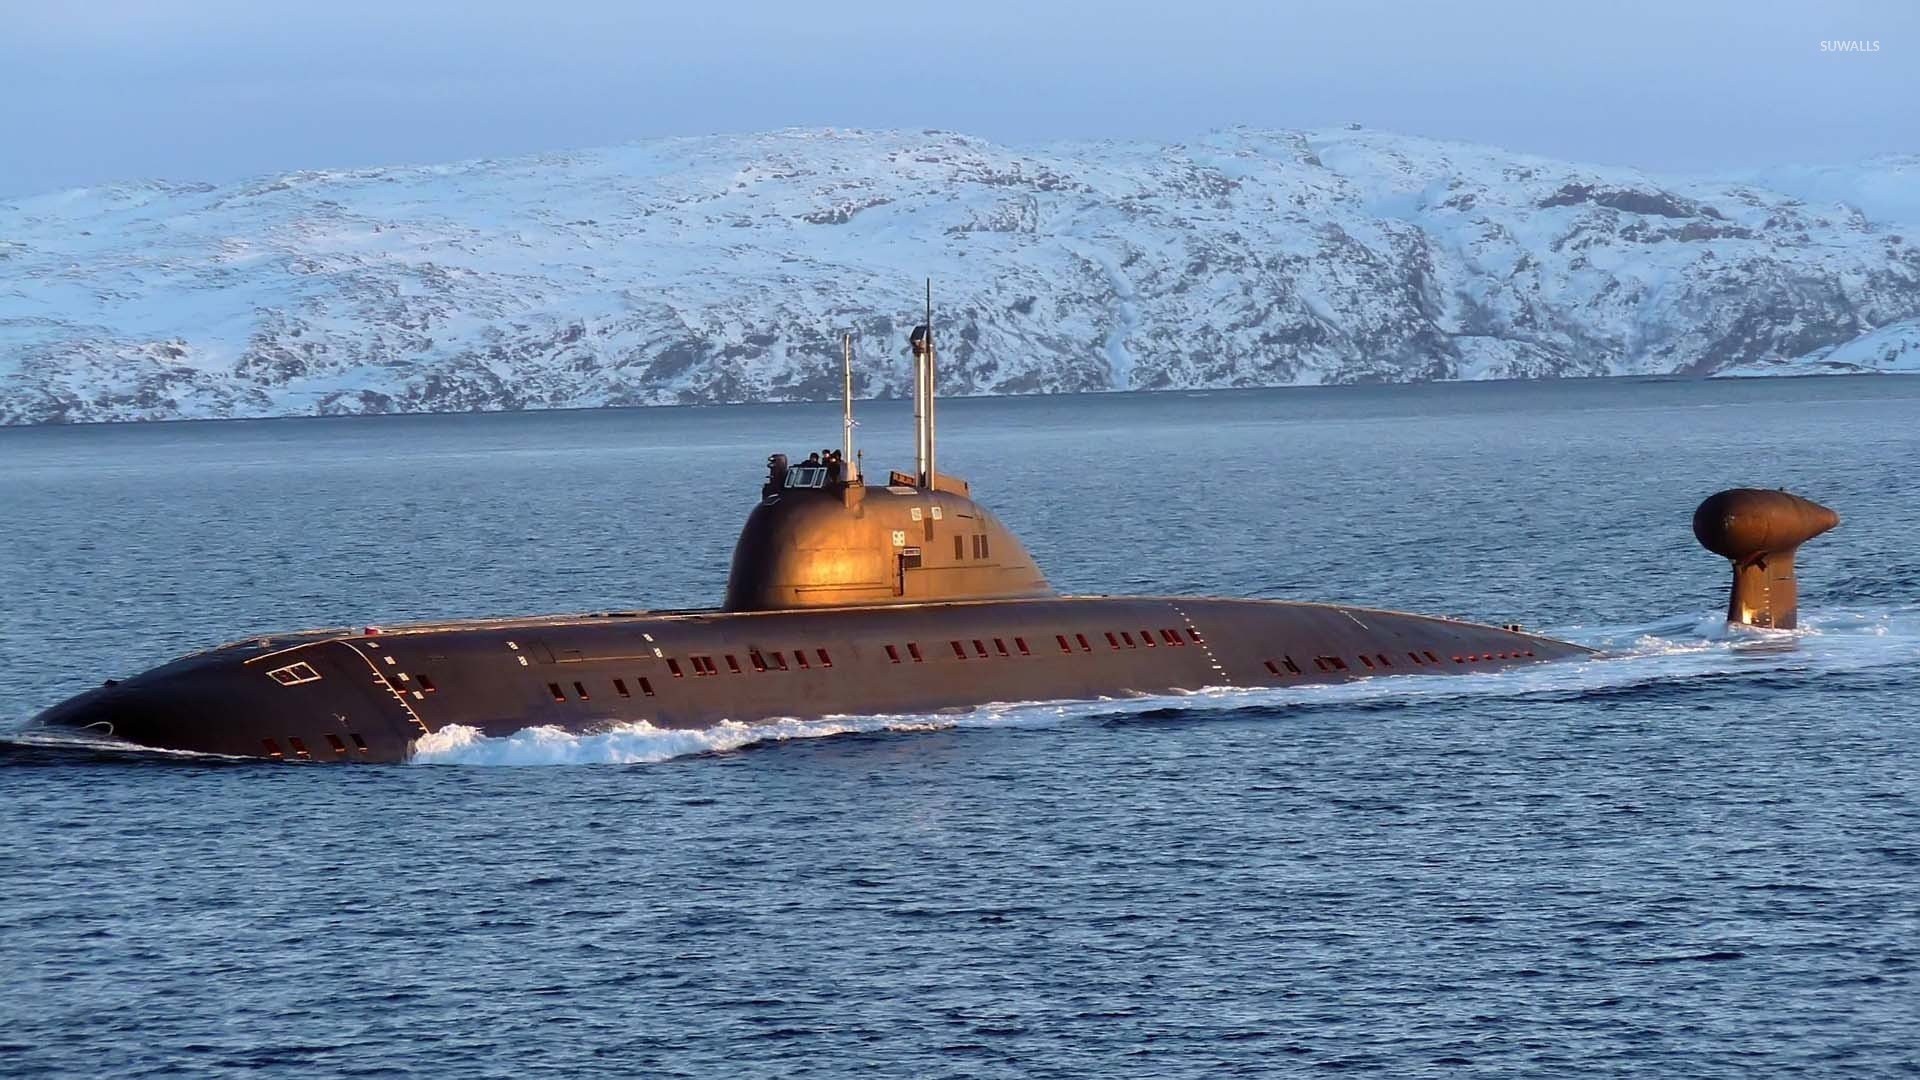 Nuclear submarine wallpaper   Photography wallpapers   45639 1920x1080